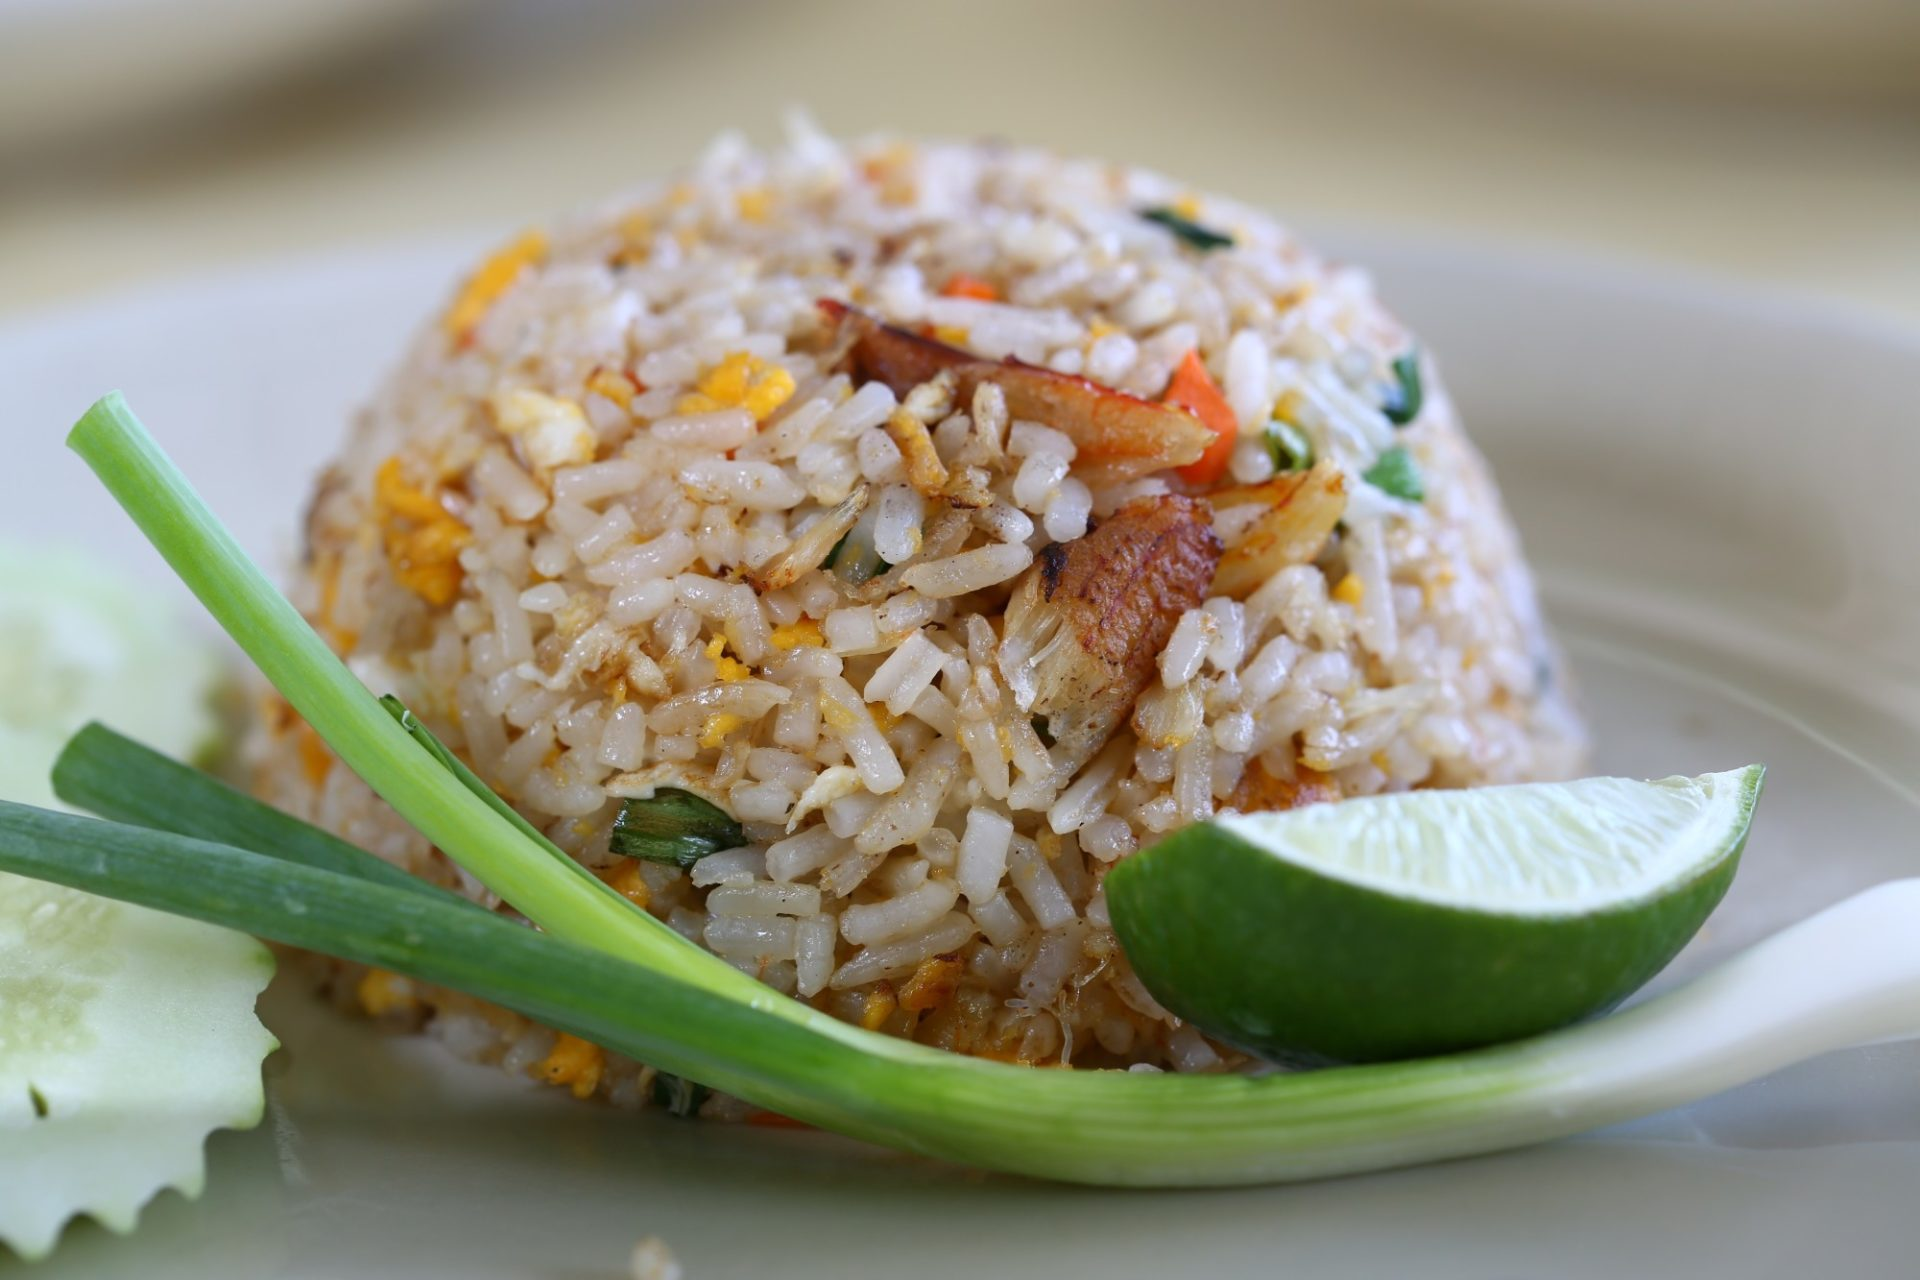 Thai Smile: 5 Reasons Why the Quality of Thai Food Is so Good